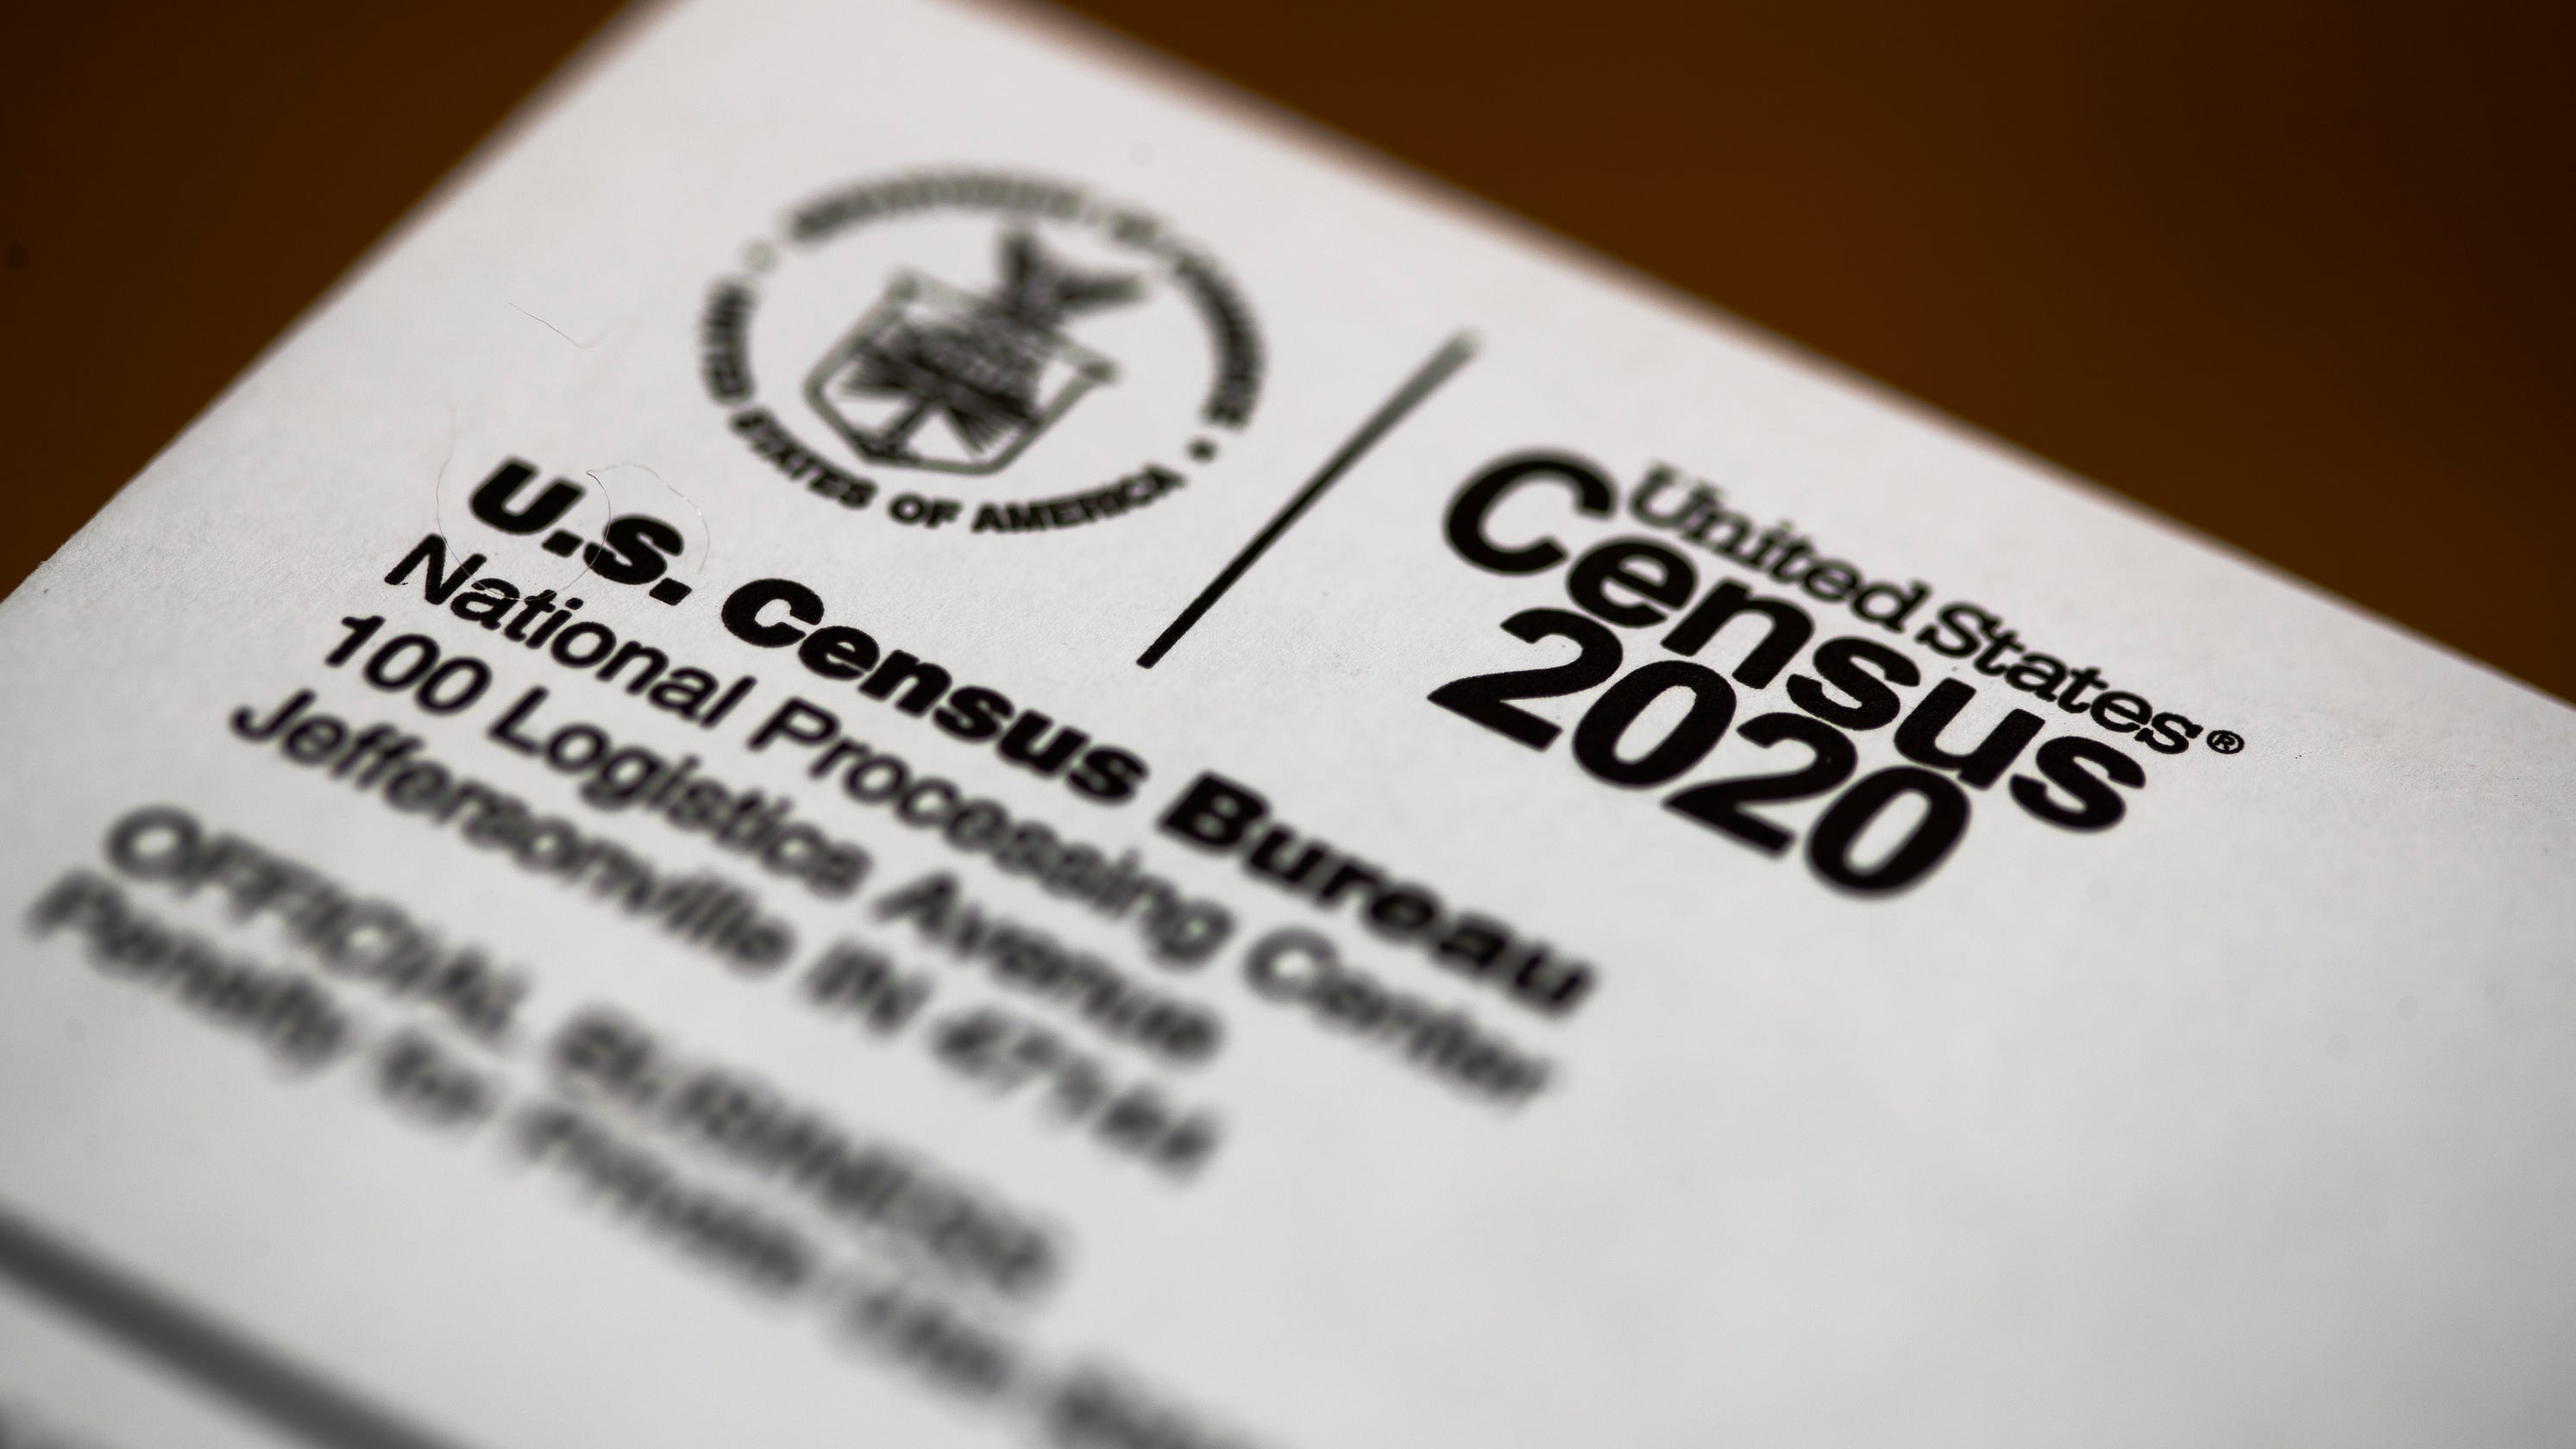 Robert Santos could make history as first person of color confirmed to lead U.S. Census Bureau